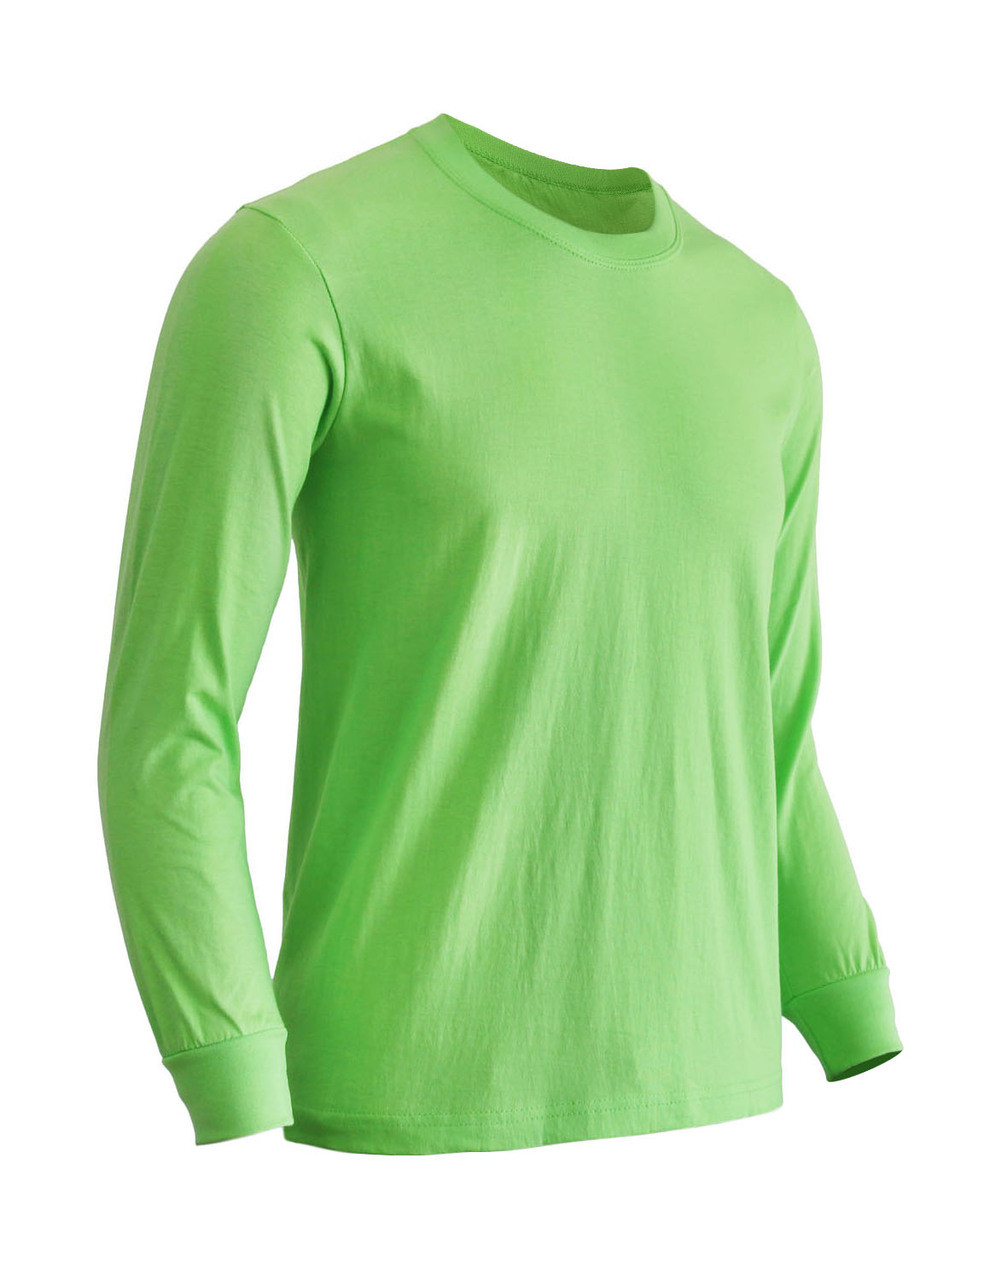 a90c0aaed Basic round neck style cotton T-shirt Crew neck long sleeves shirt-Light  green